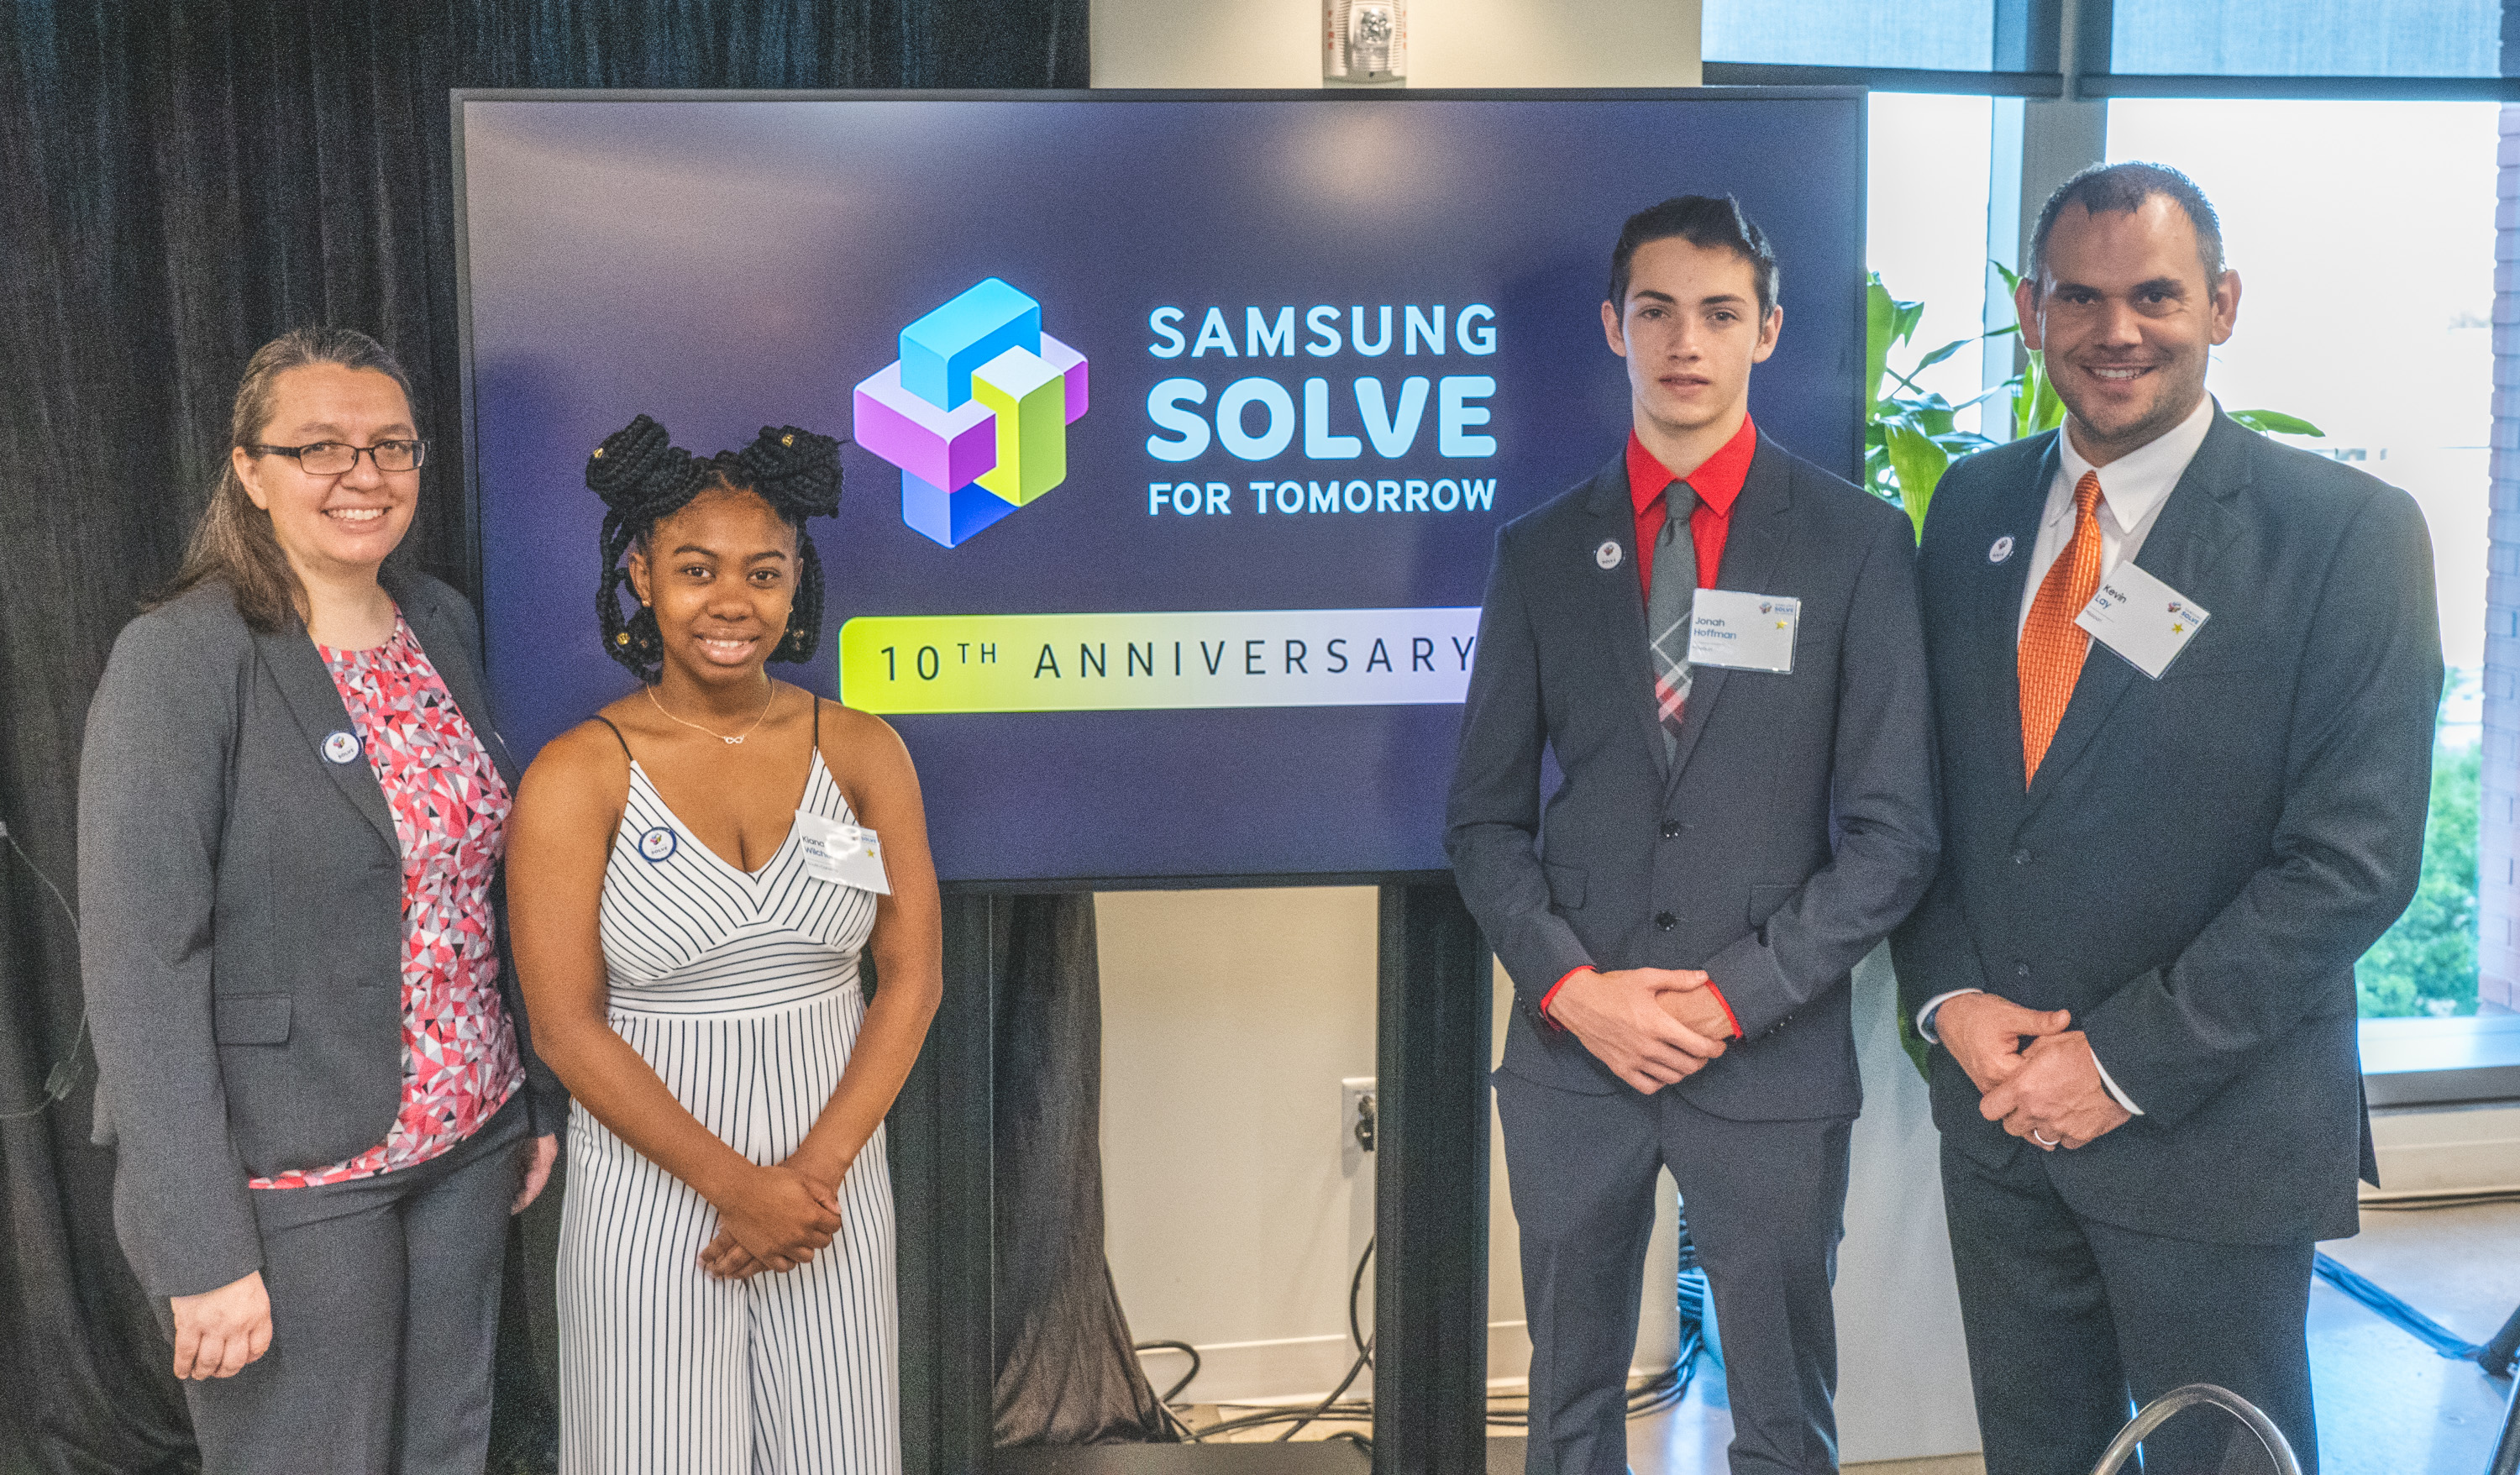 (L-R) 2018-2019 Samsung Solve for Tomorrow National Finalist teacher, Kirstin Bullington and student, Kiana Wilcher of Richland Two Institute of Innovation in Columbia, South Carolina and 2018-2019 Samsung Solve for Tomorrow National Winner student, Jonah Hoffman and teacher, Kevin Lay of Owensville High School in Owensville, Missouri attend the 2019-2020 launch event on September 12, 2019 in Washington, D.C.